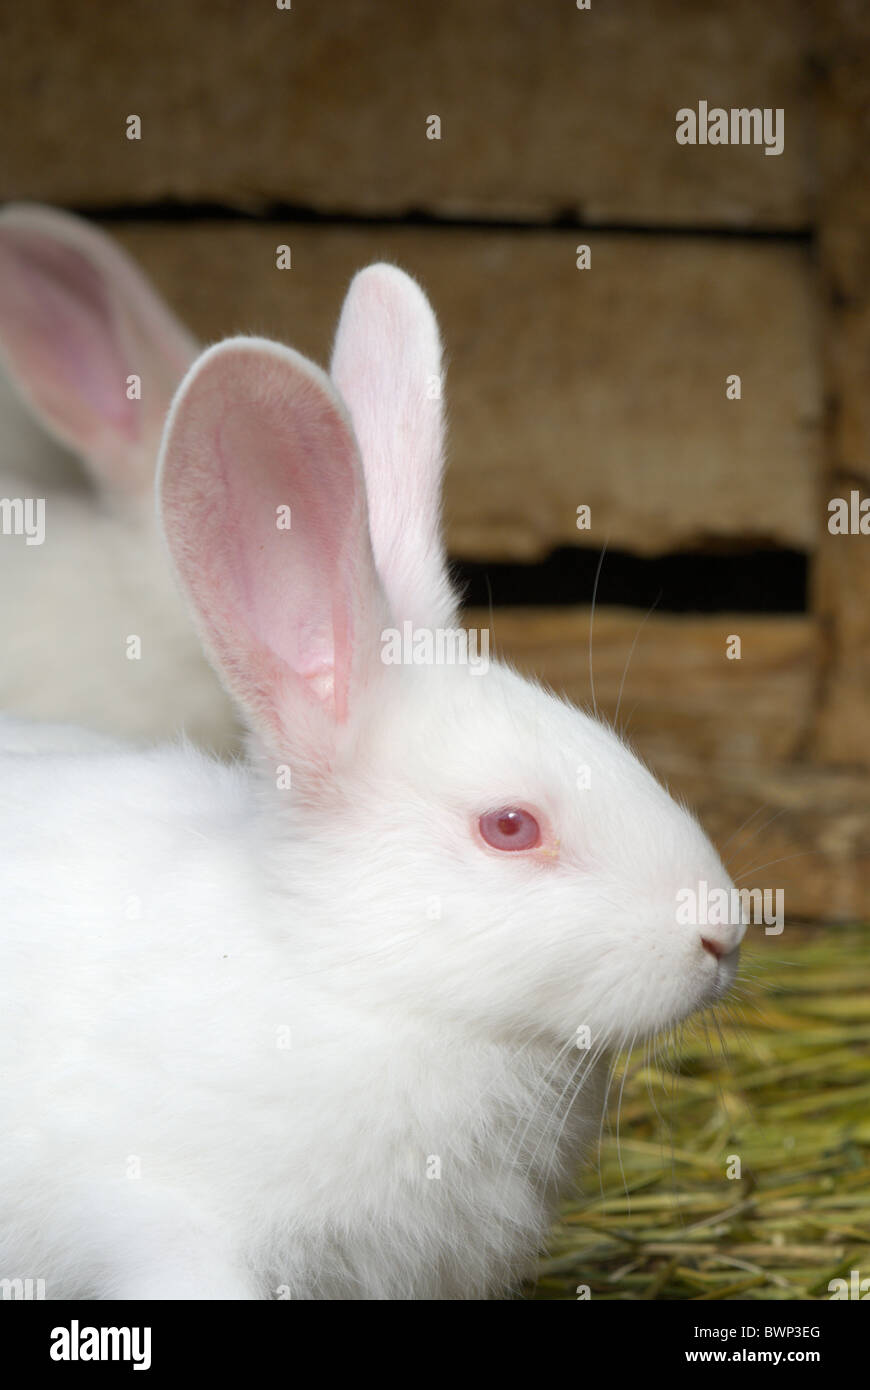 White Rabbit In Cage High Resolution Stock Photography and Images ...